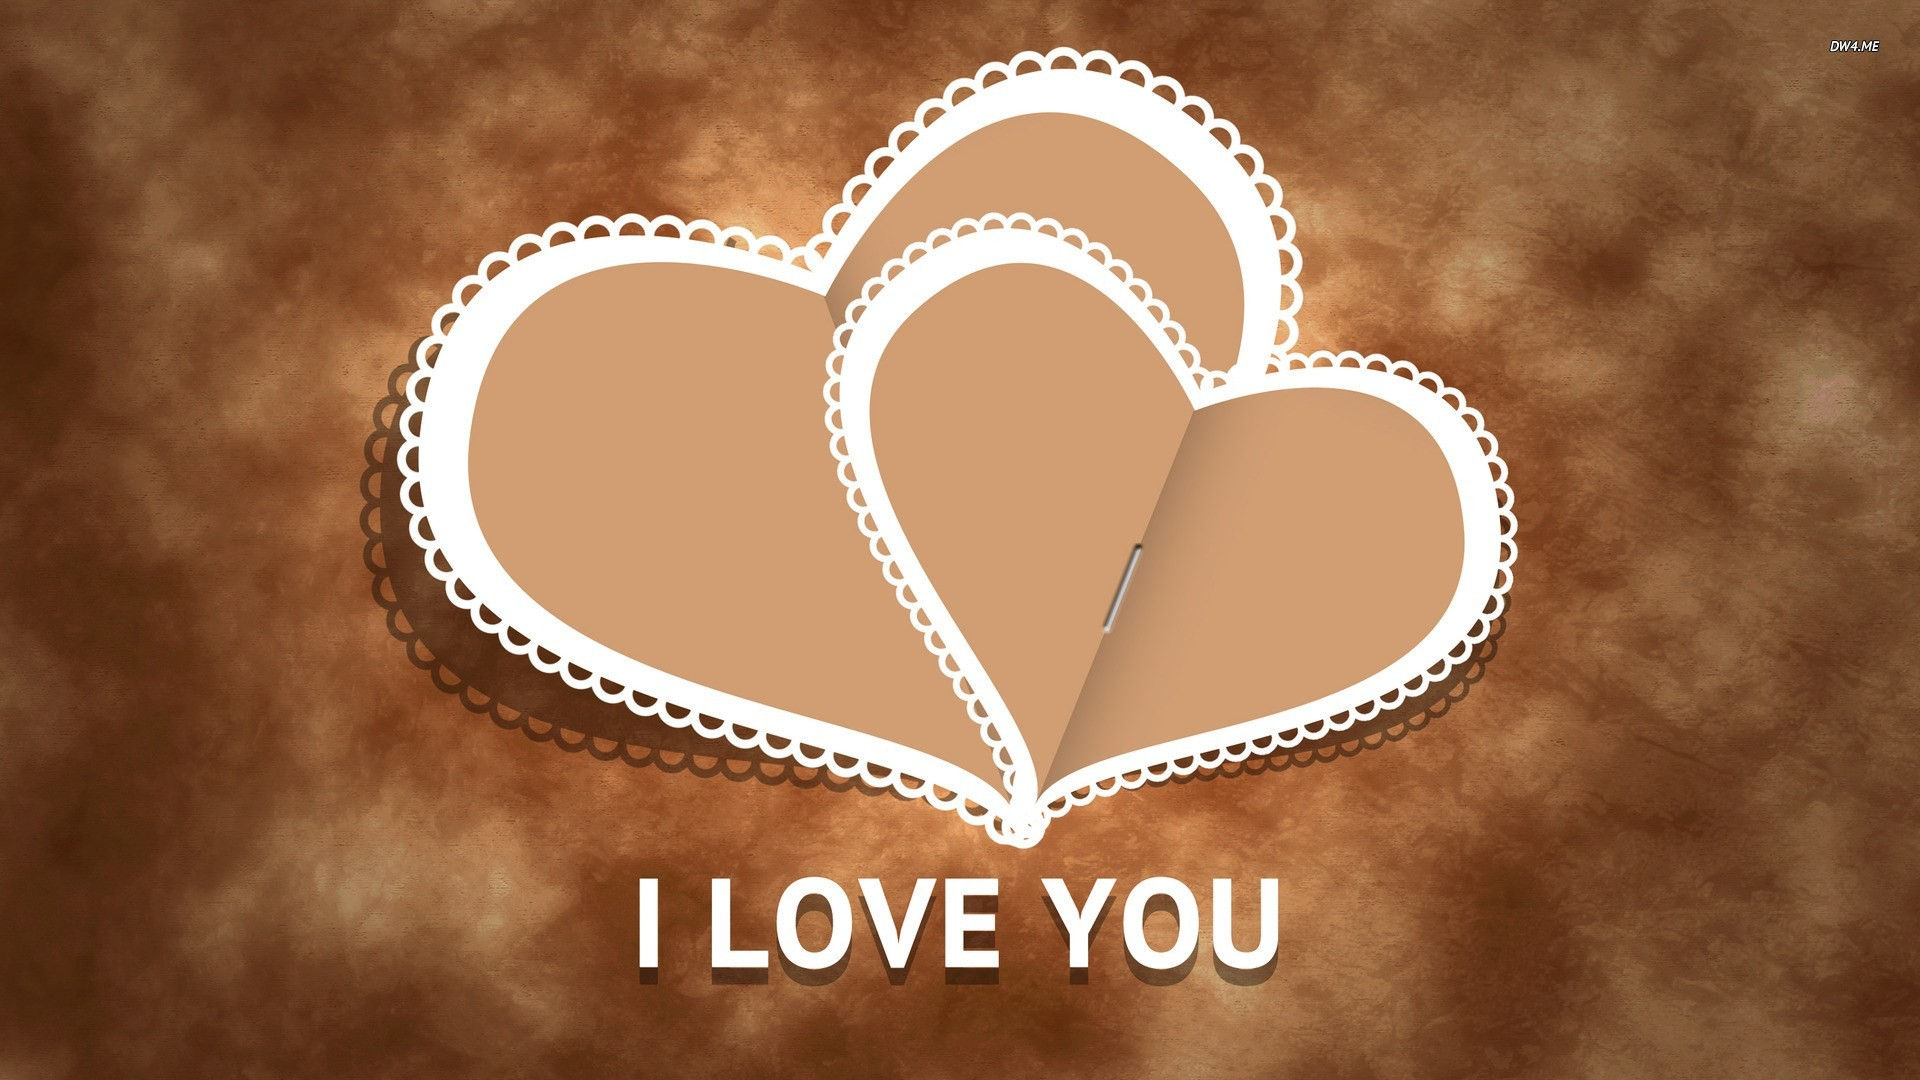 Popular Wallpaper Love Miss You - 966356-download-free-i-miss-you-wallpaper-1920x1080-for-meizu  Image_898572.jpg